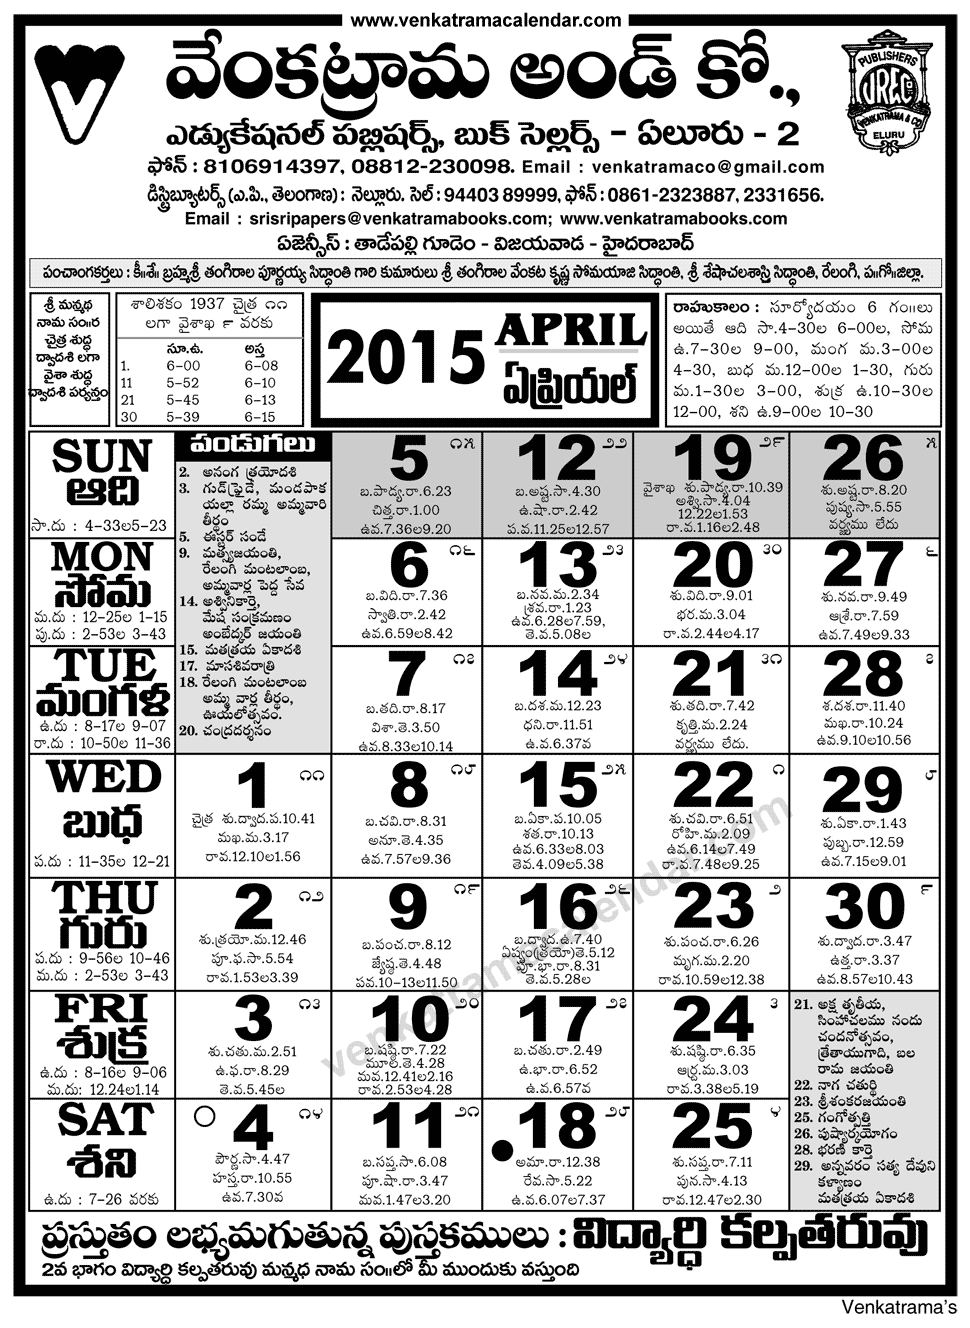 April Venkatrama Co Calendar : Venkatrama co calendar april